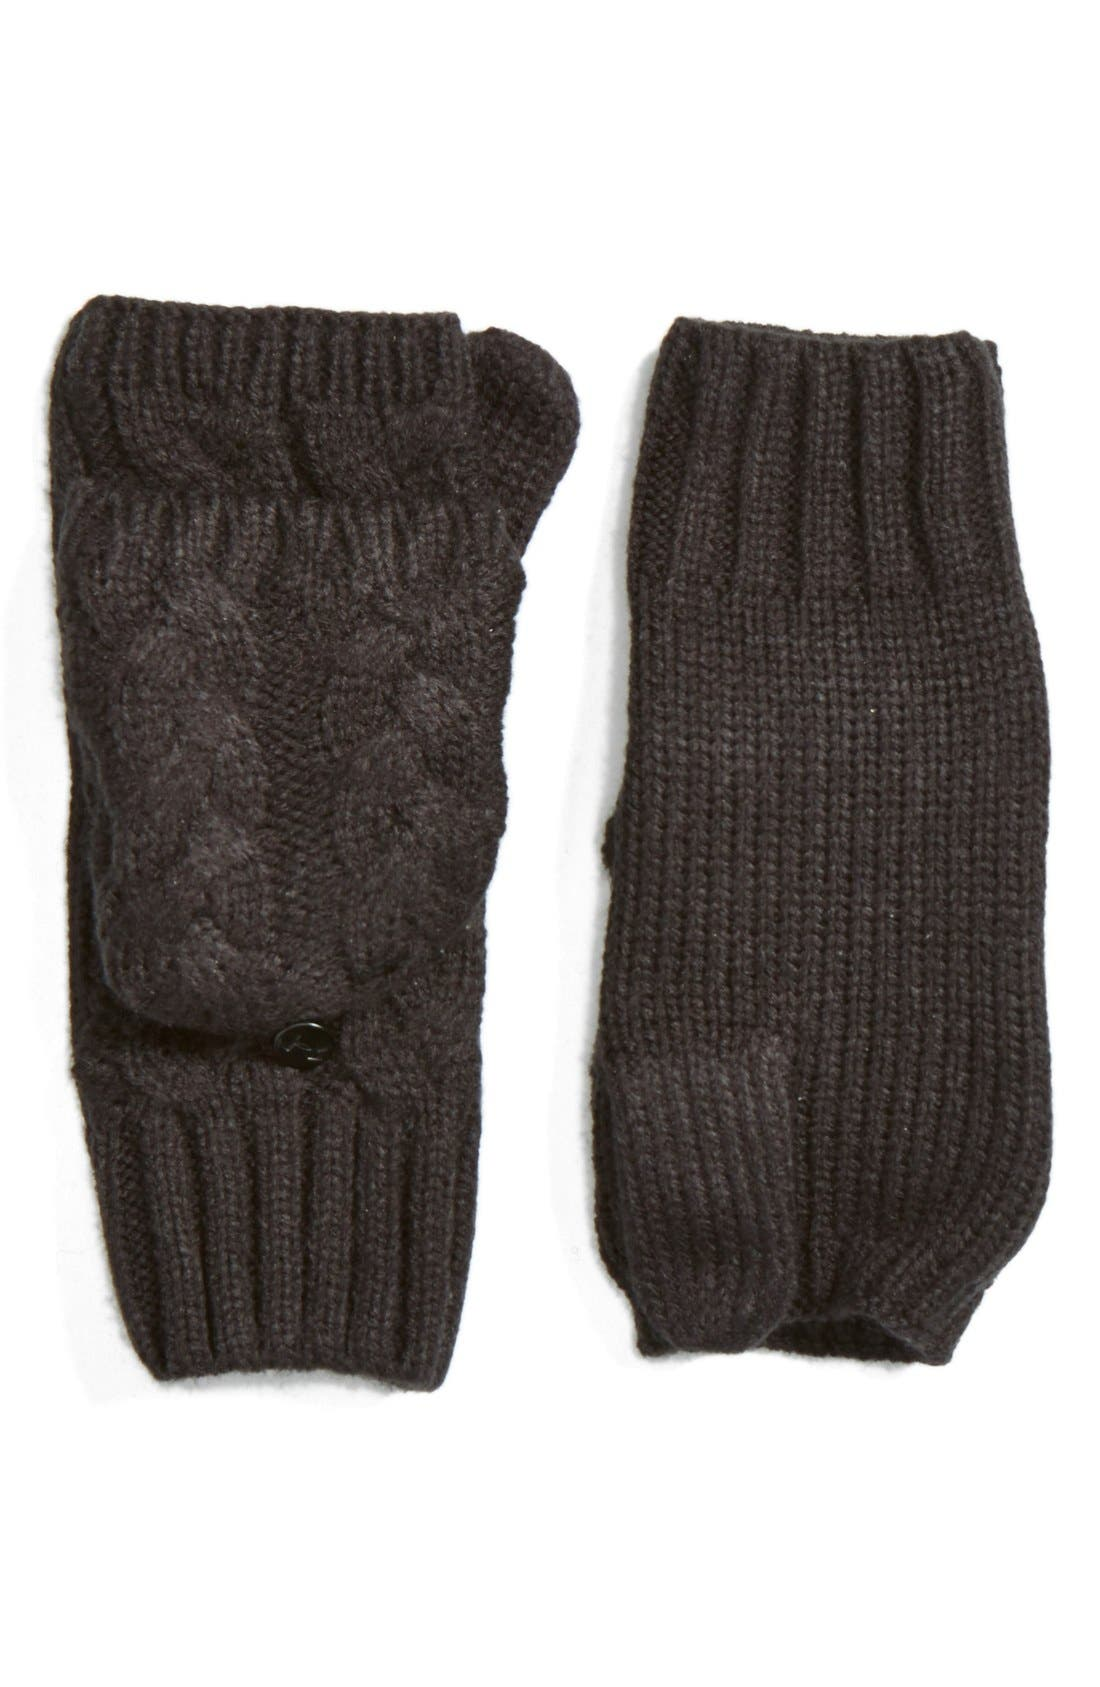 'Around Town' Pop Top Mittens,                             Main thumbnail 1, color,                             001